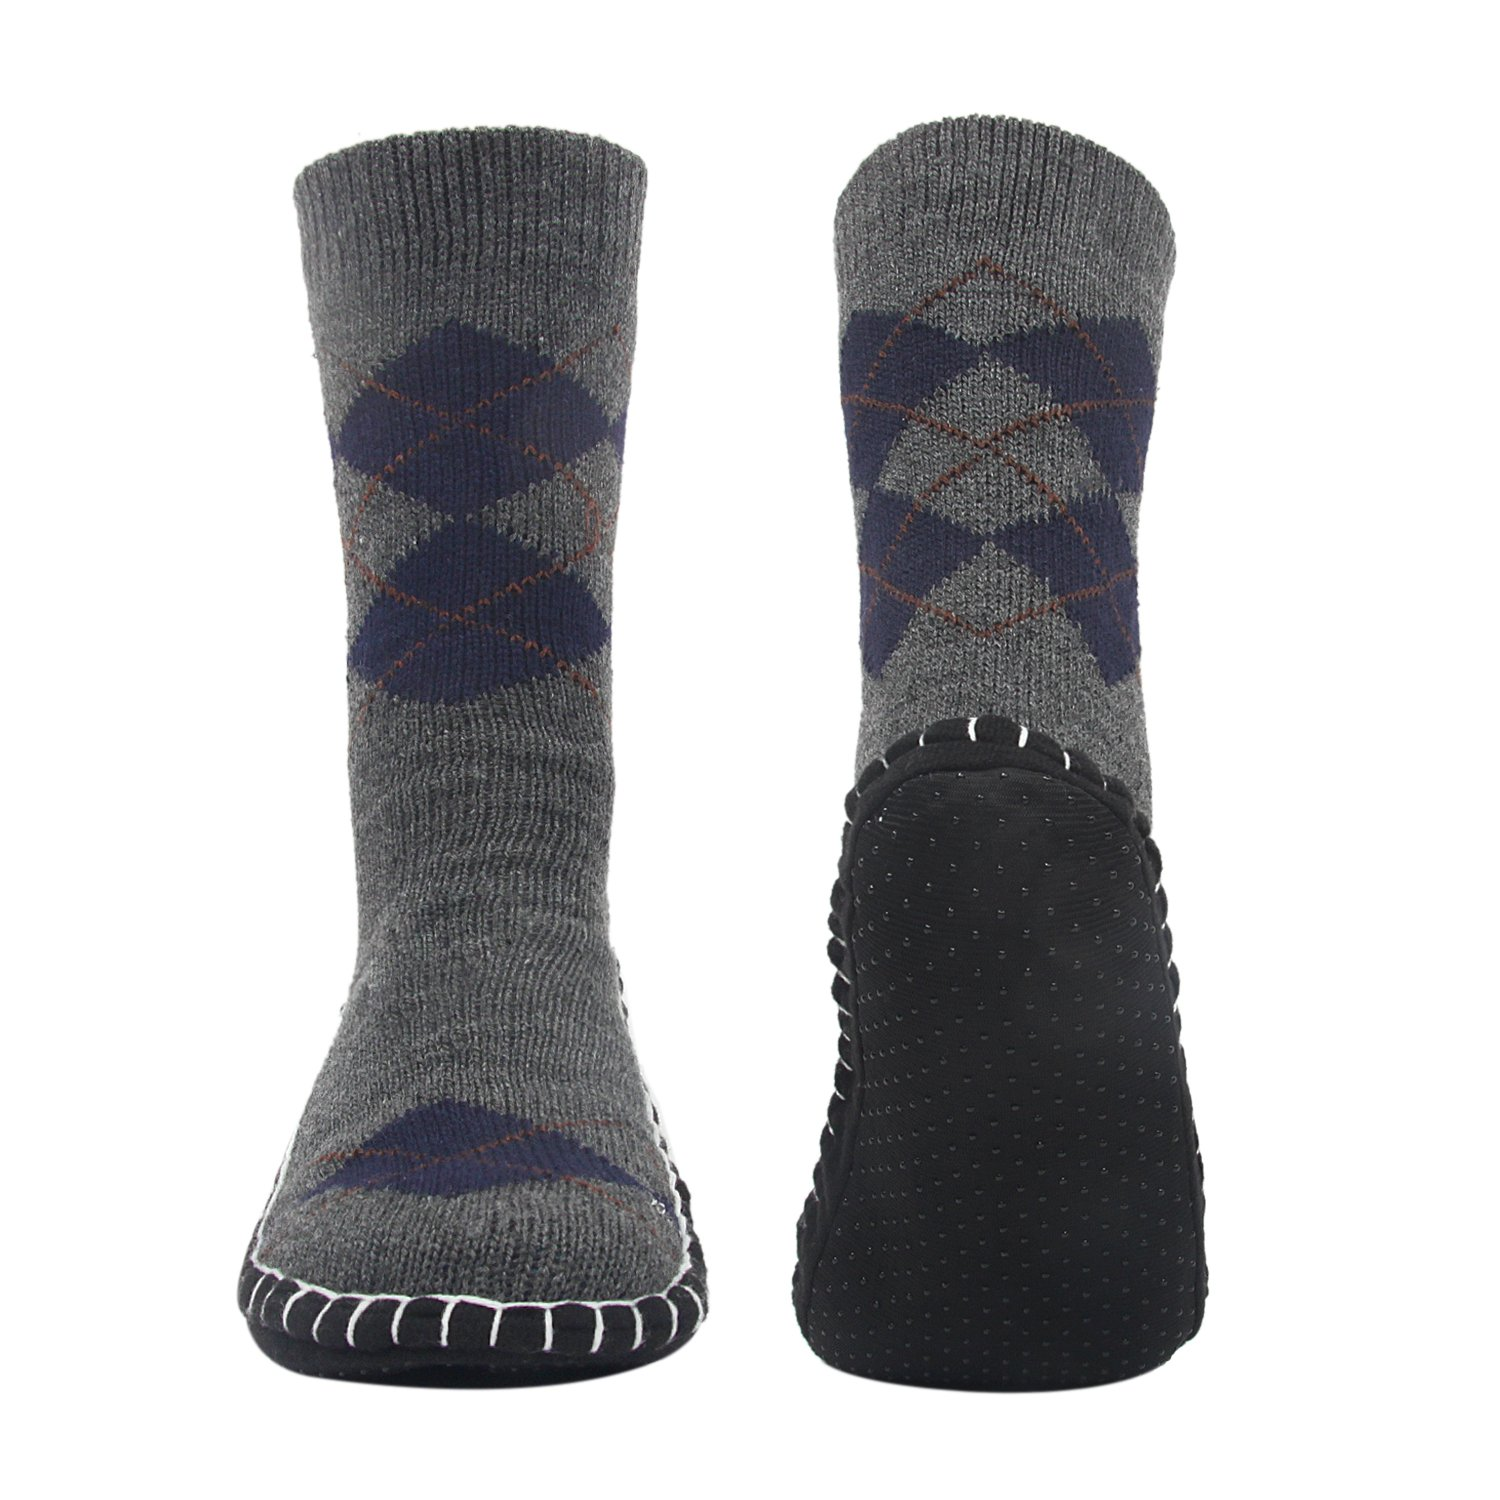 Vihir Men's Winter Knitted Non-Skid Home Warm Slipper Socks Indoor Floor Stocking House Shoes by Vihir